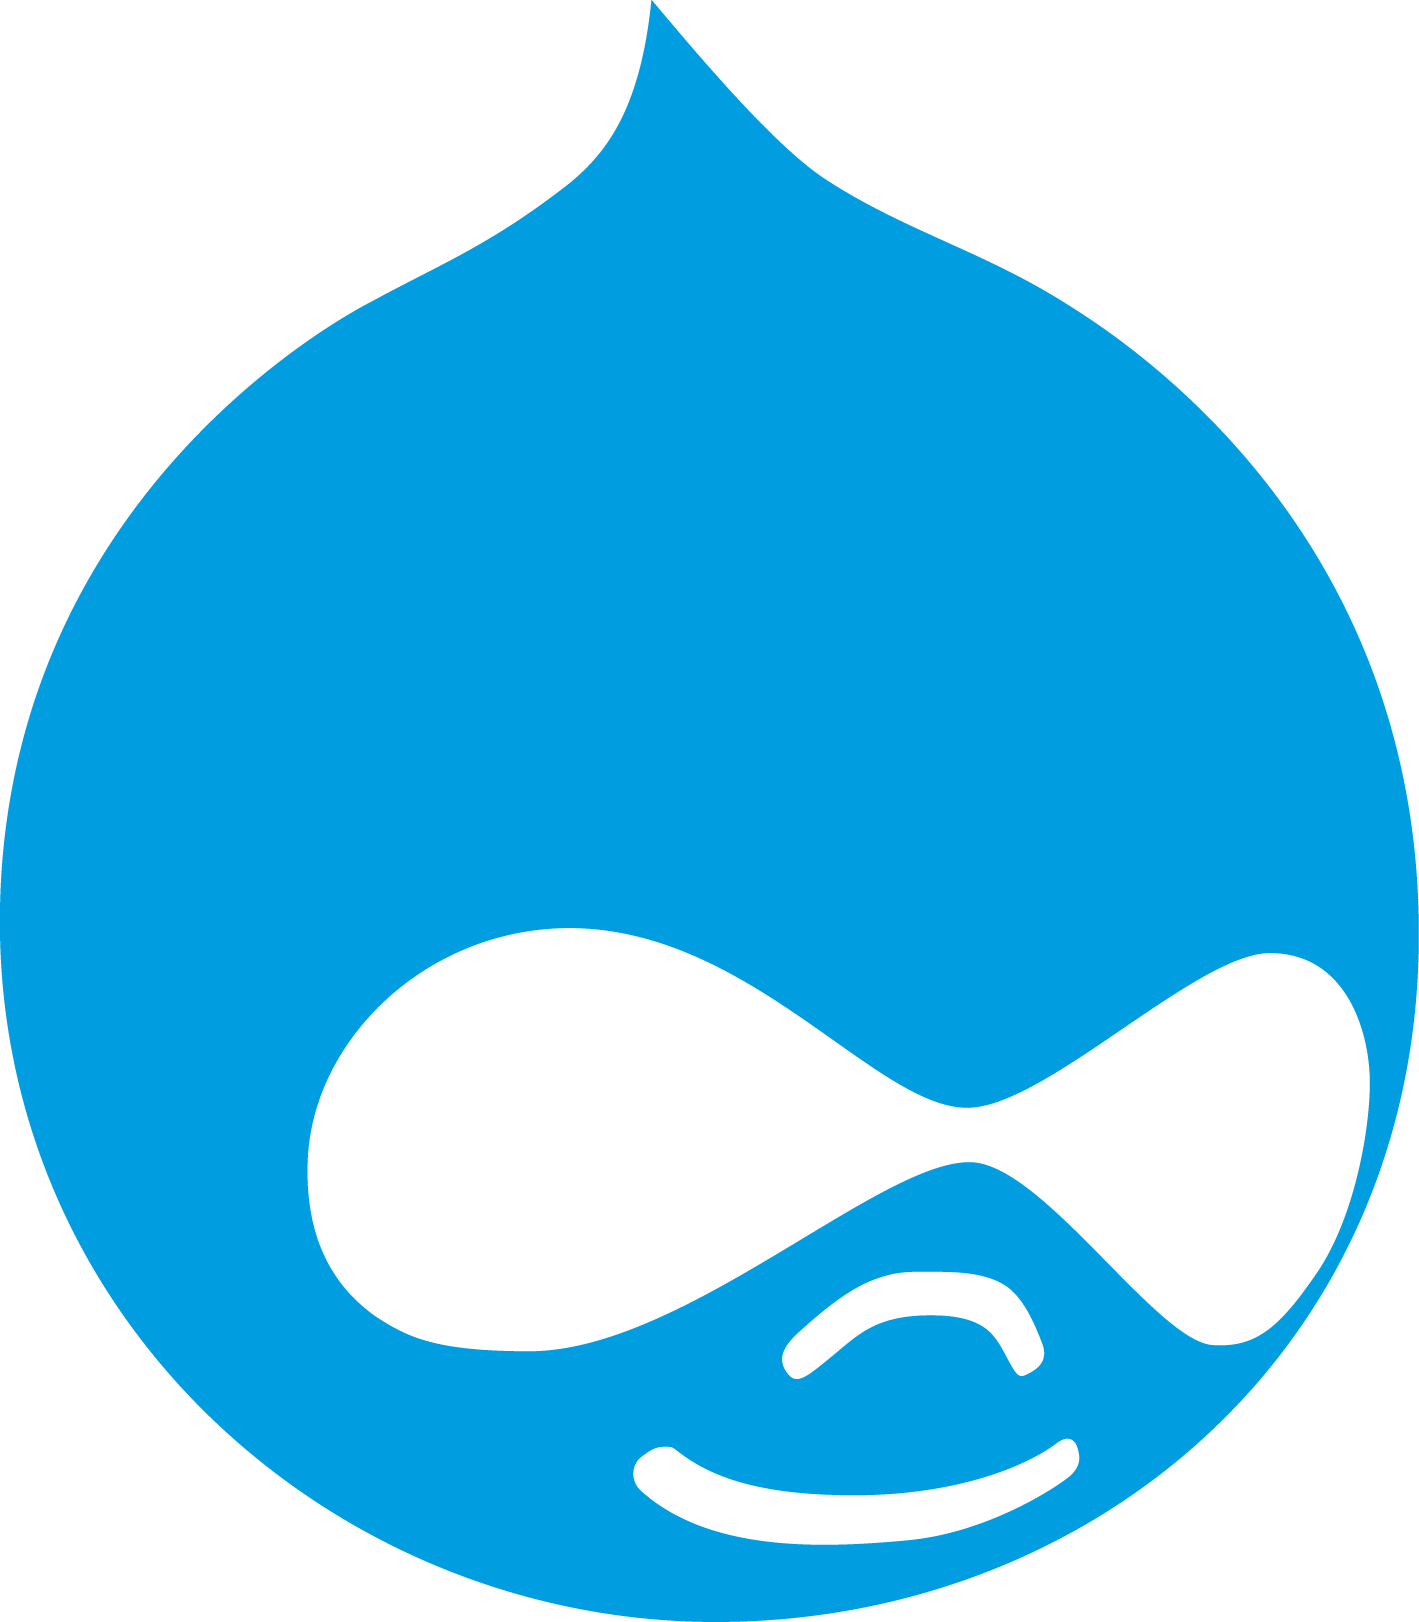 Drupal Logo Wallpaper